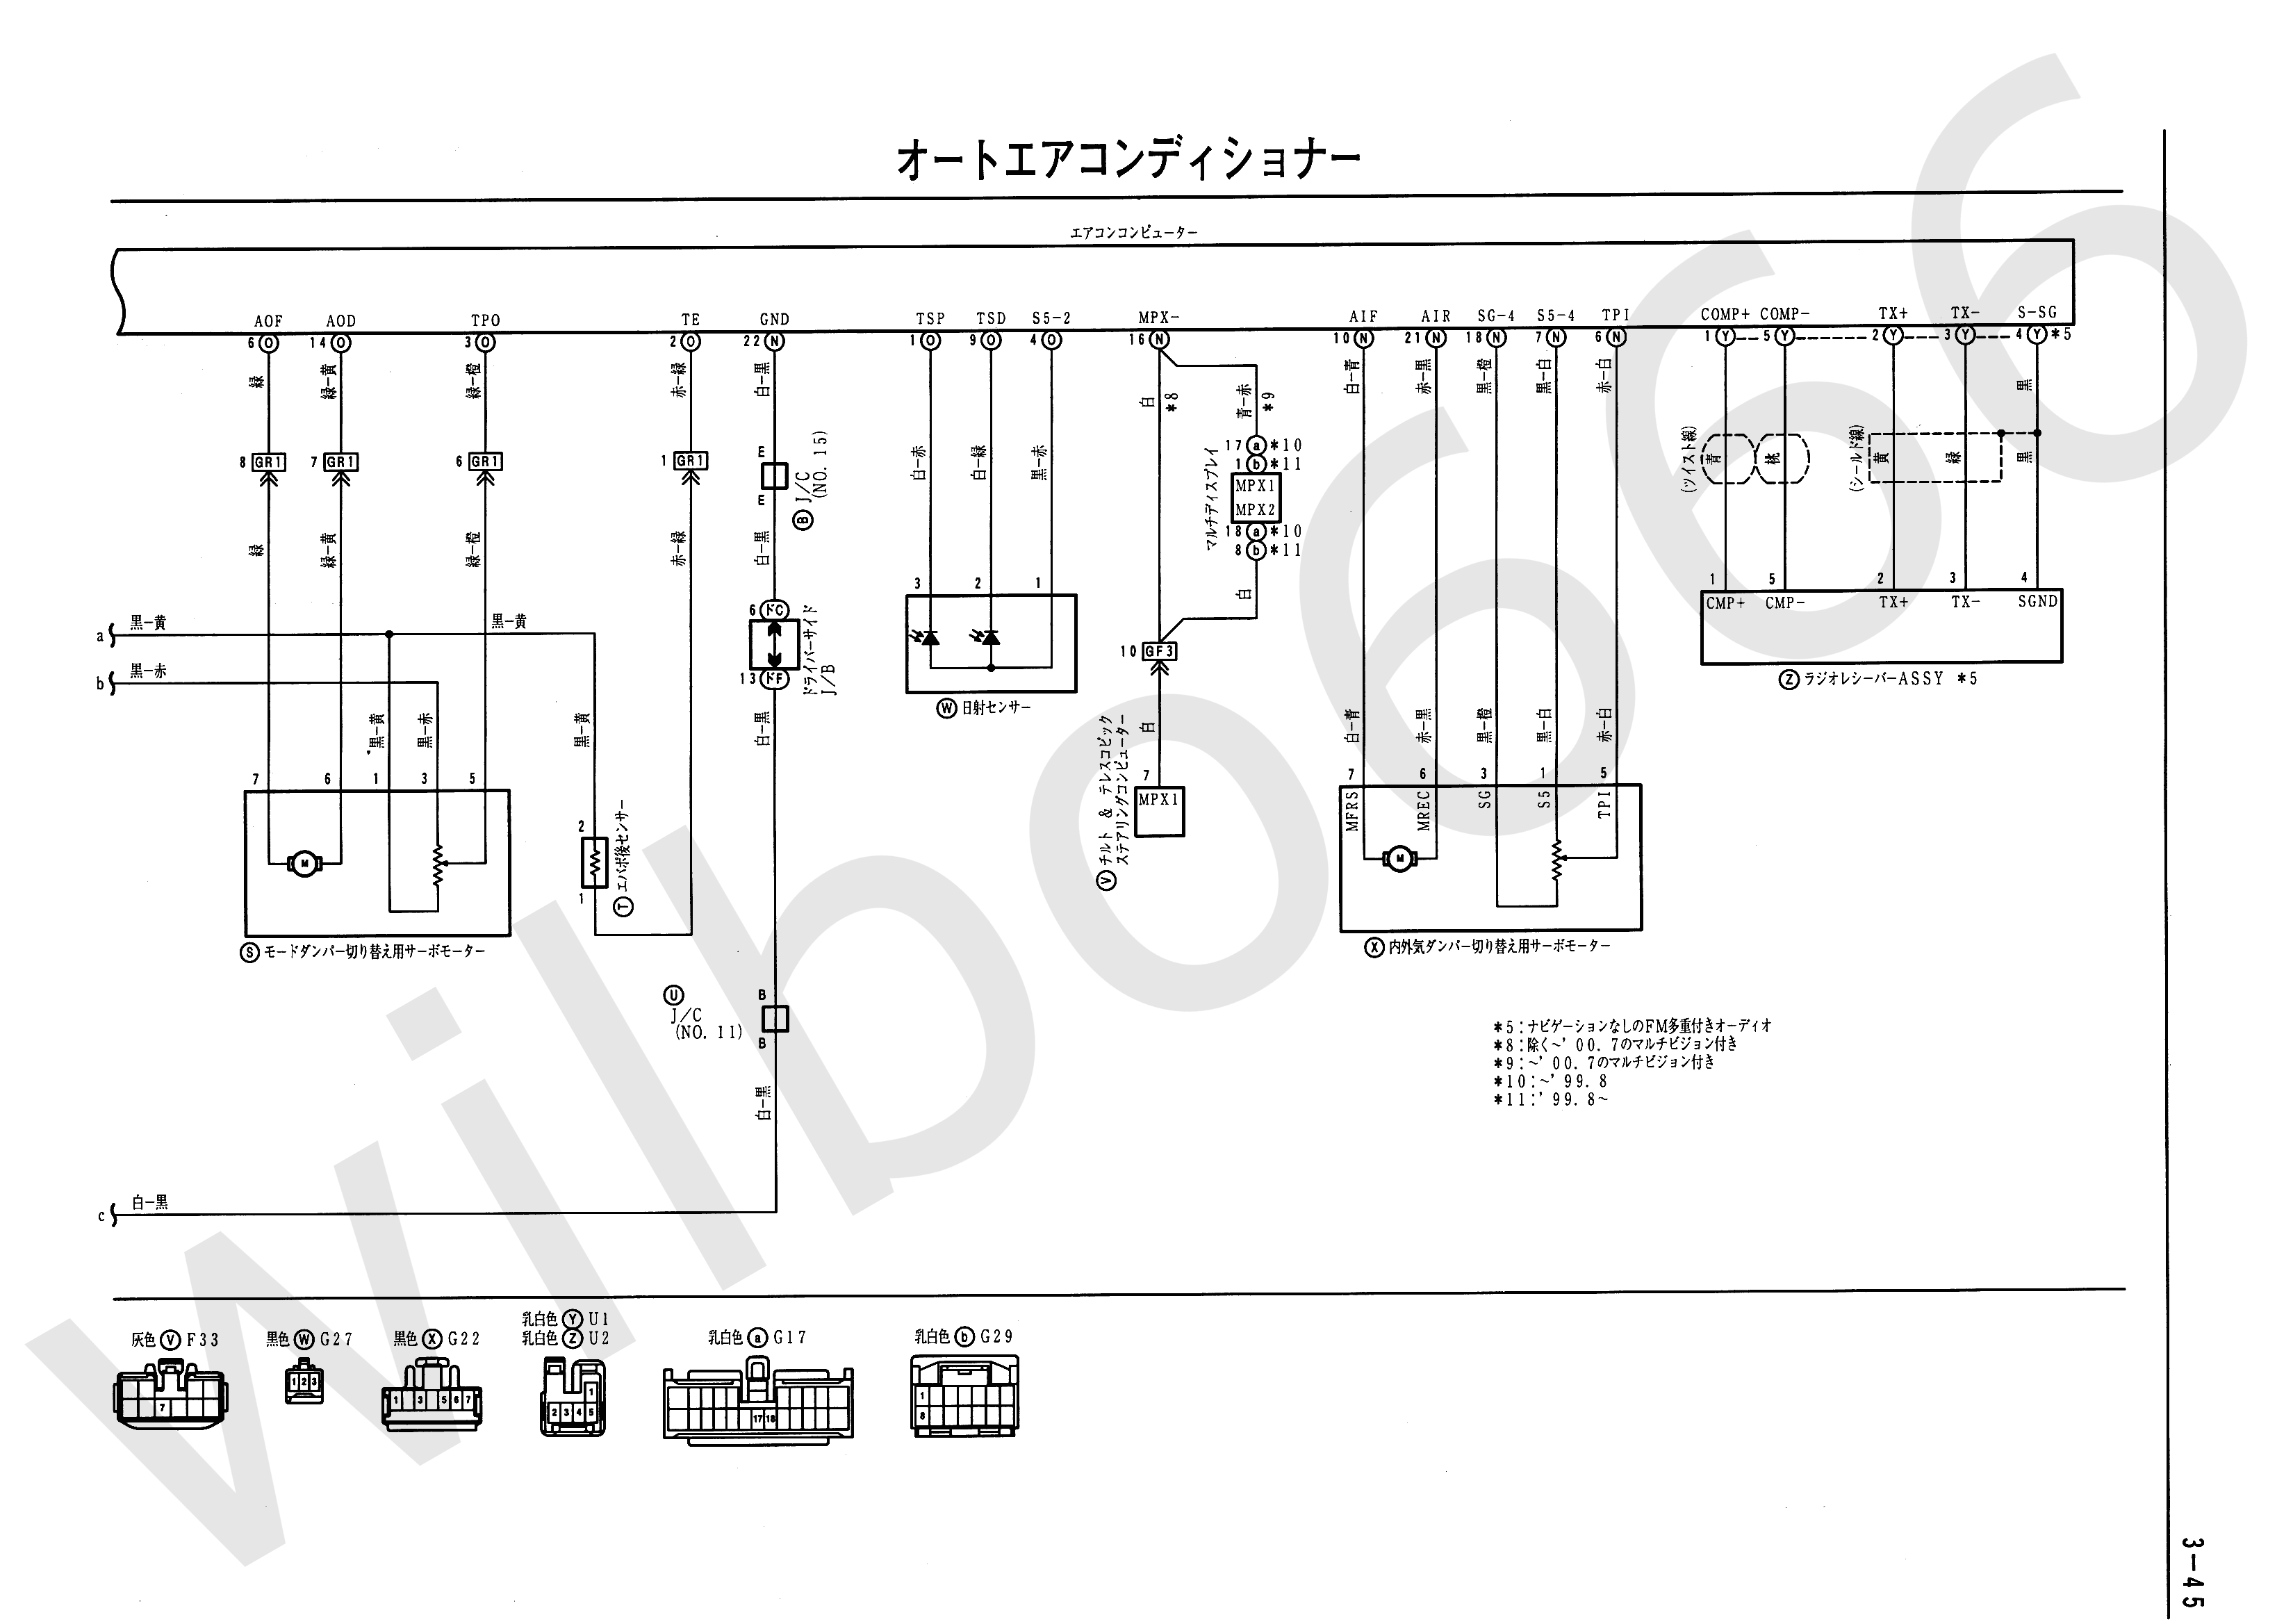 2jz wiring diagram mortise lock parts wilbo666 gte vvti jzs161 aristo engine